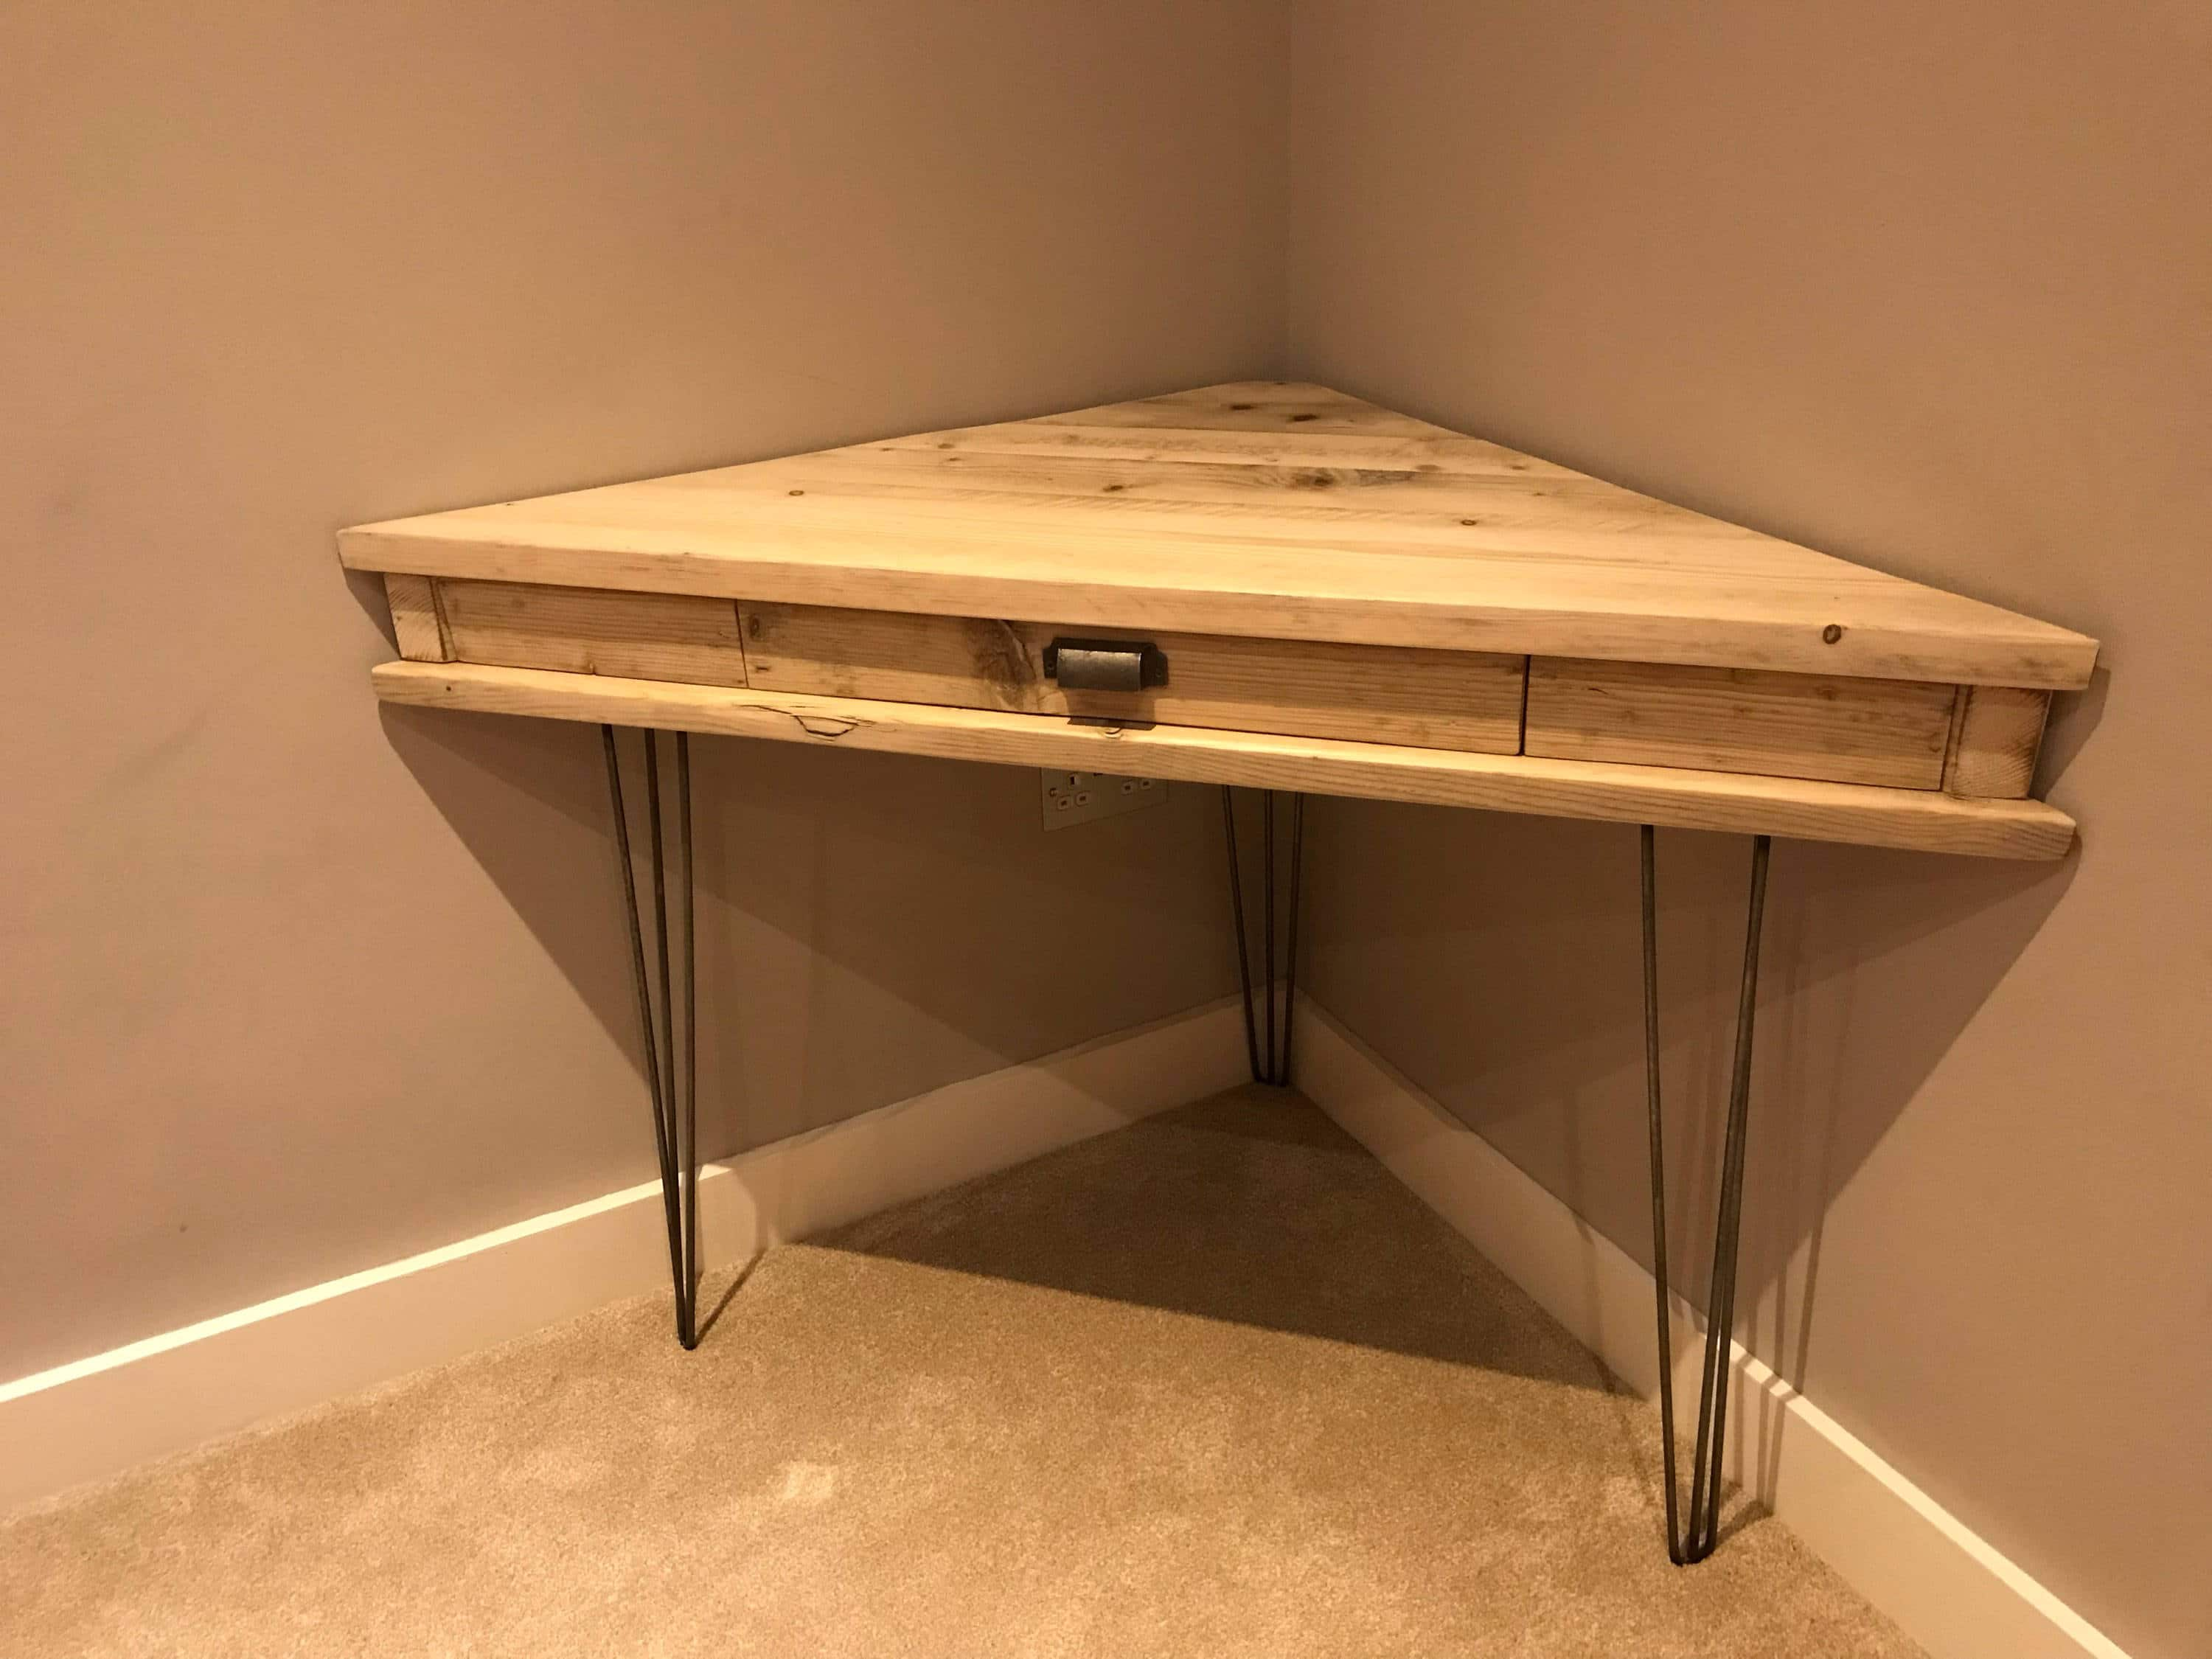 Reclaimed rustic solid pine corner box desk with drawer and metal hairpin legs newcointeriors - Pine corner desks ...